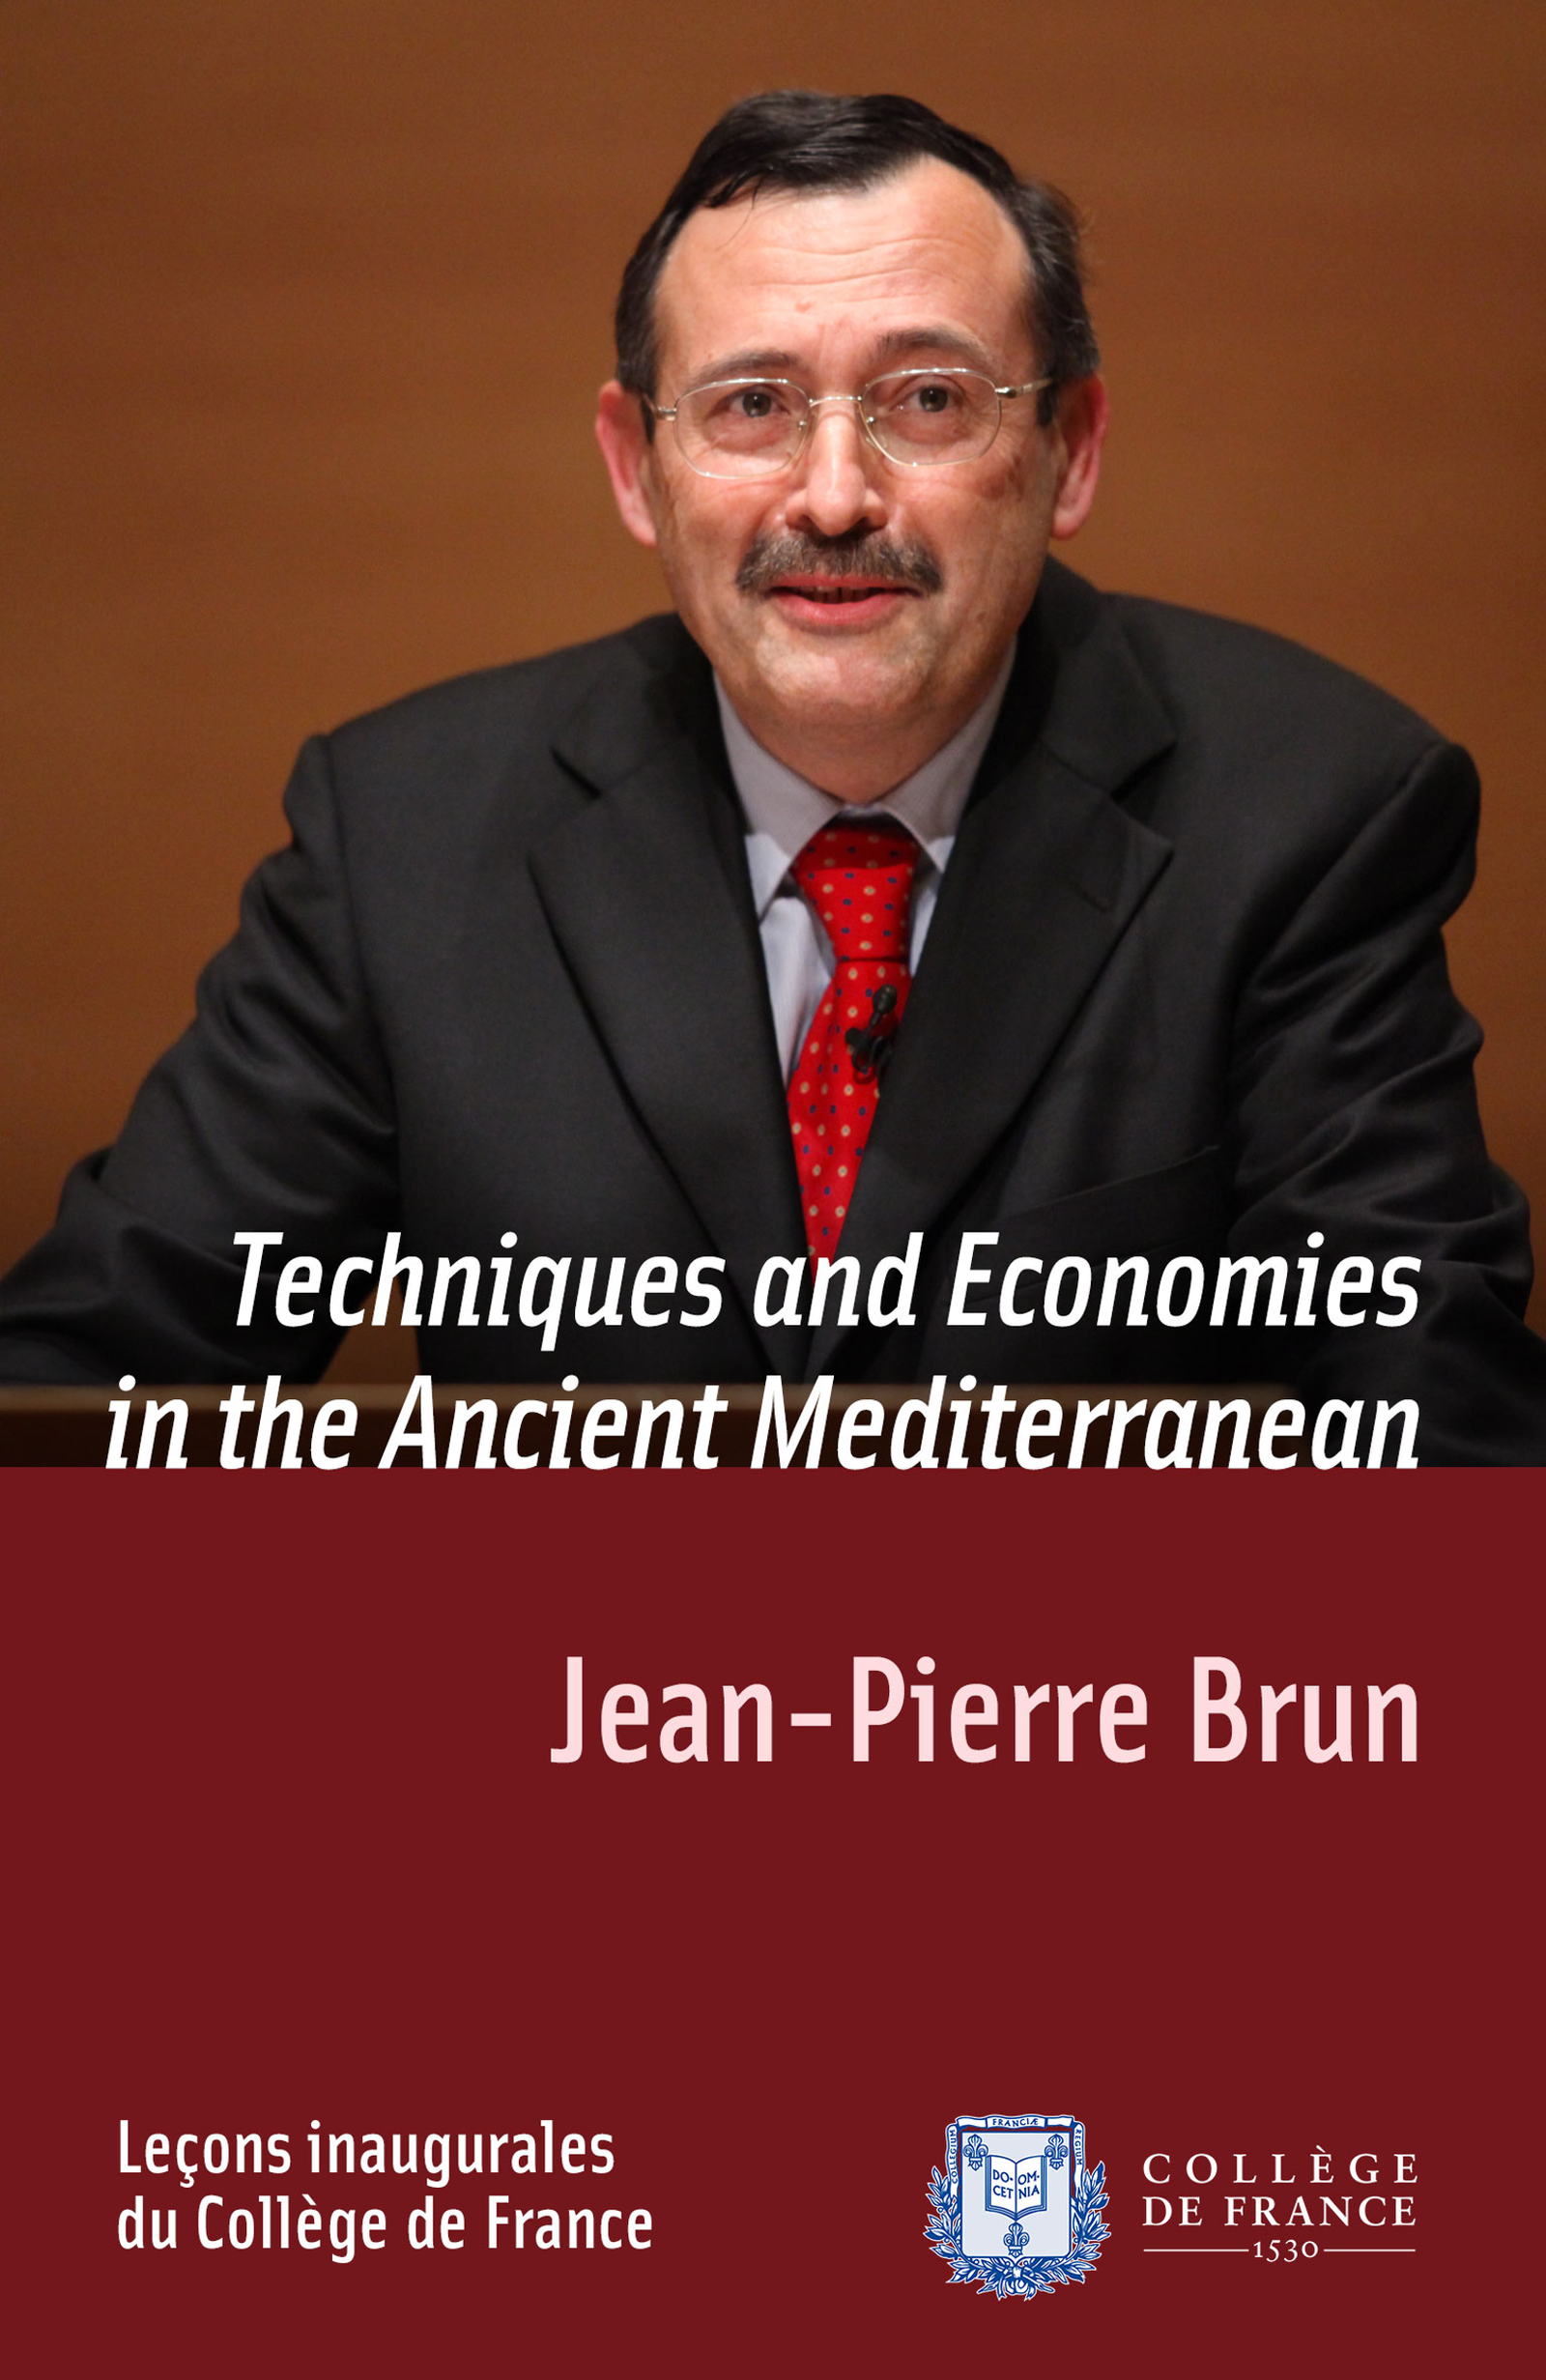 Techniques and Economies in the Ancient Mediterranean